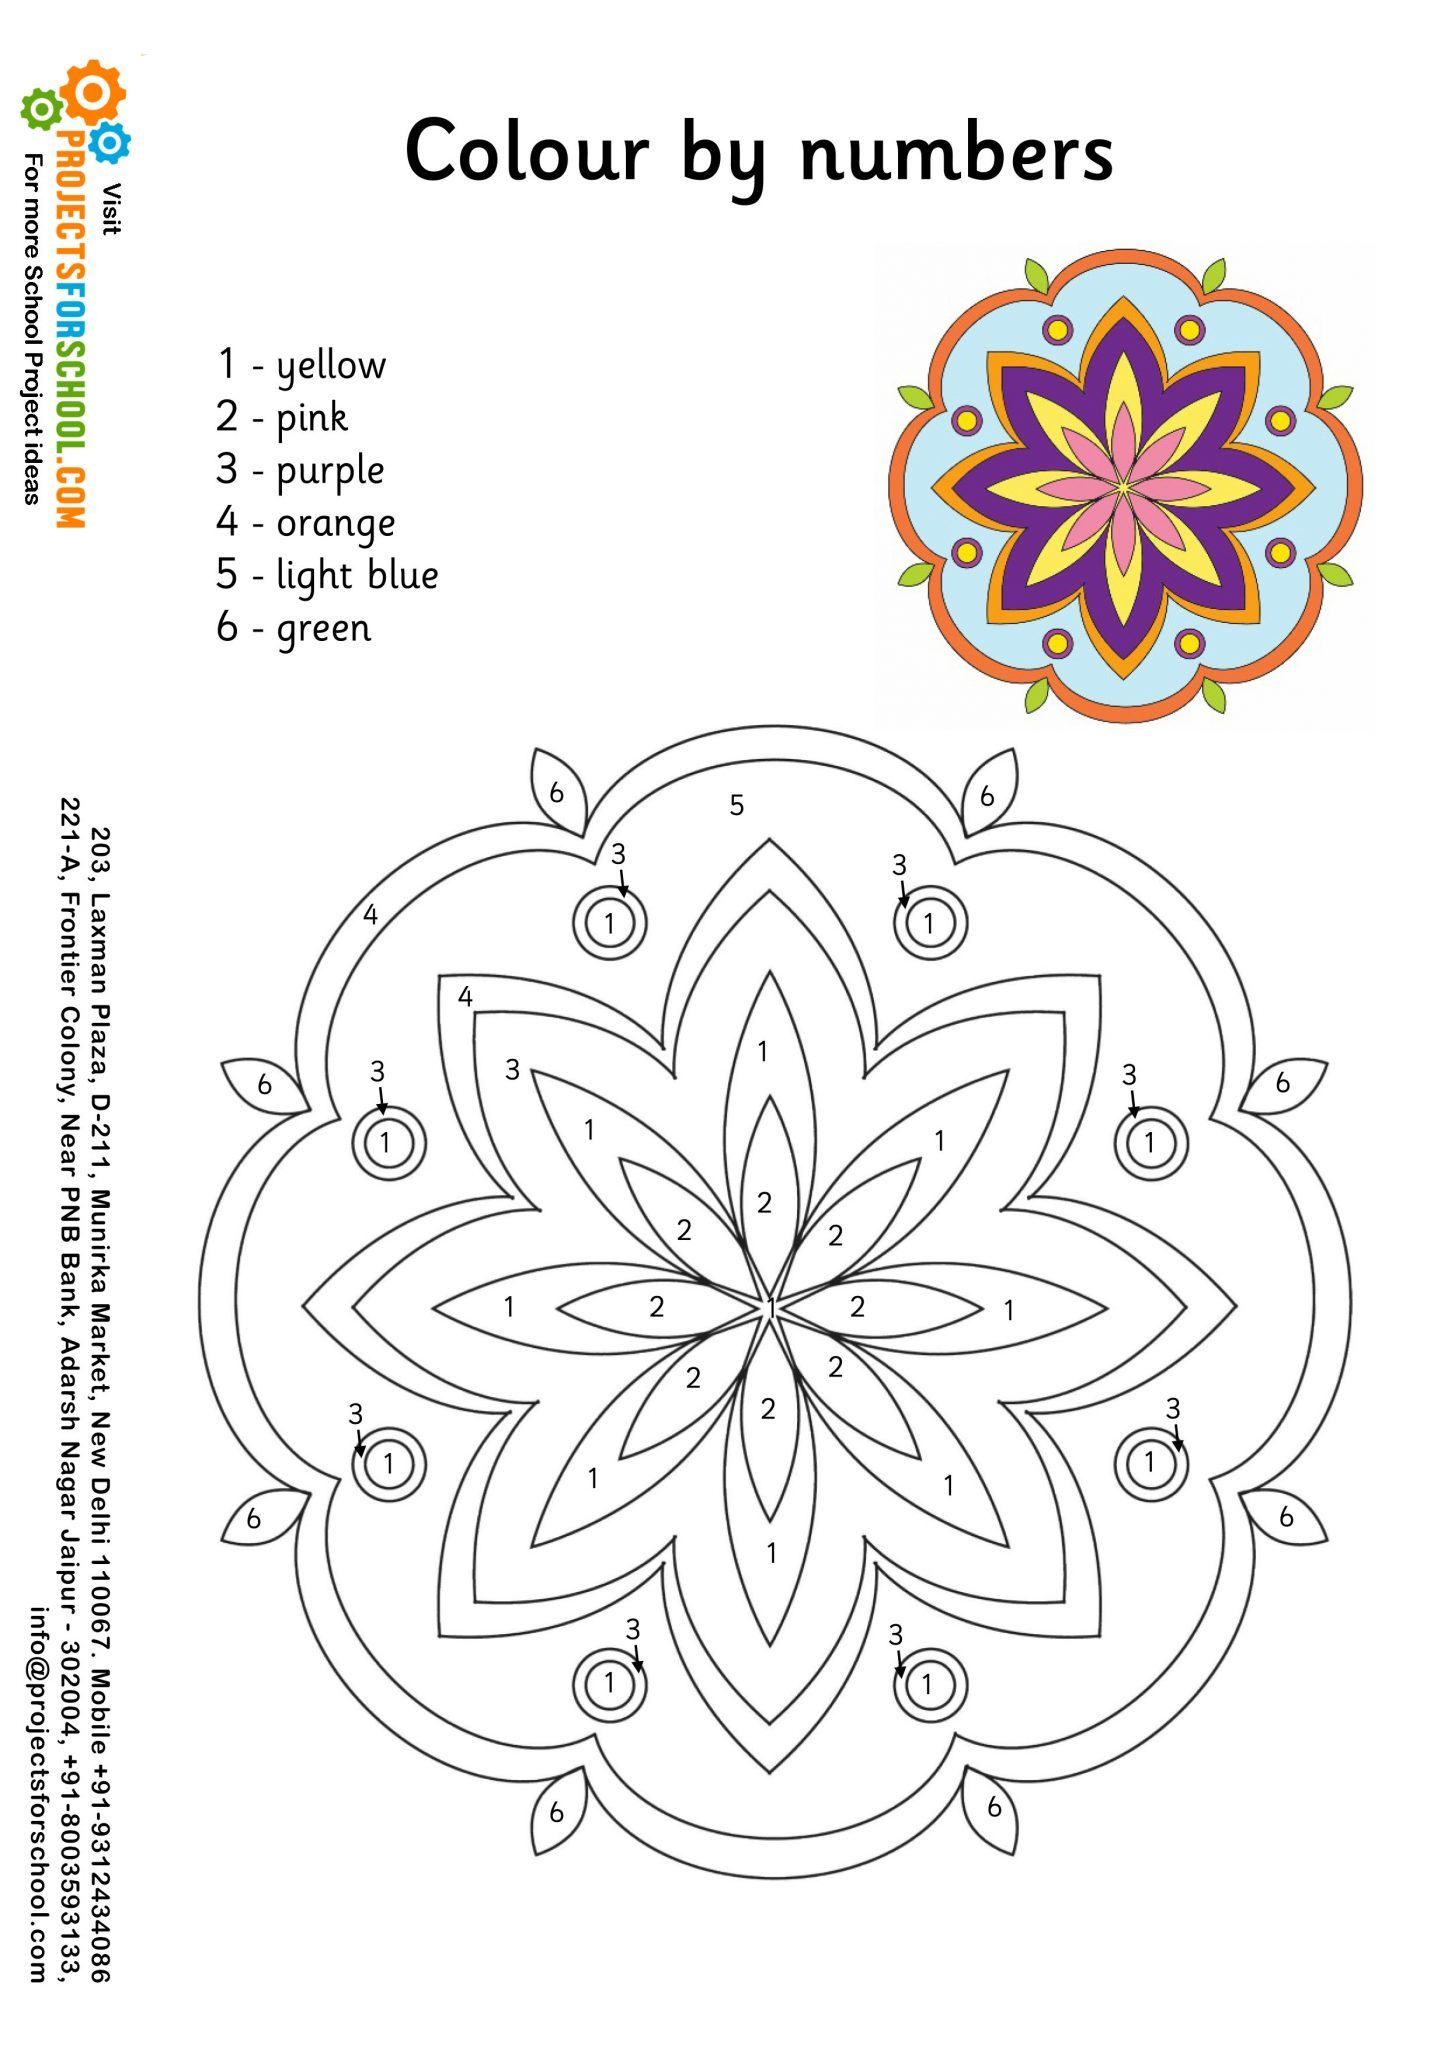 Rangoli - Color By Numbers - Free download | Rangoli Making for ...